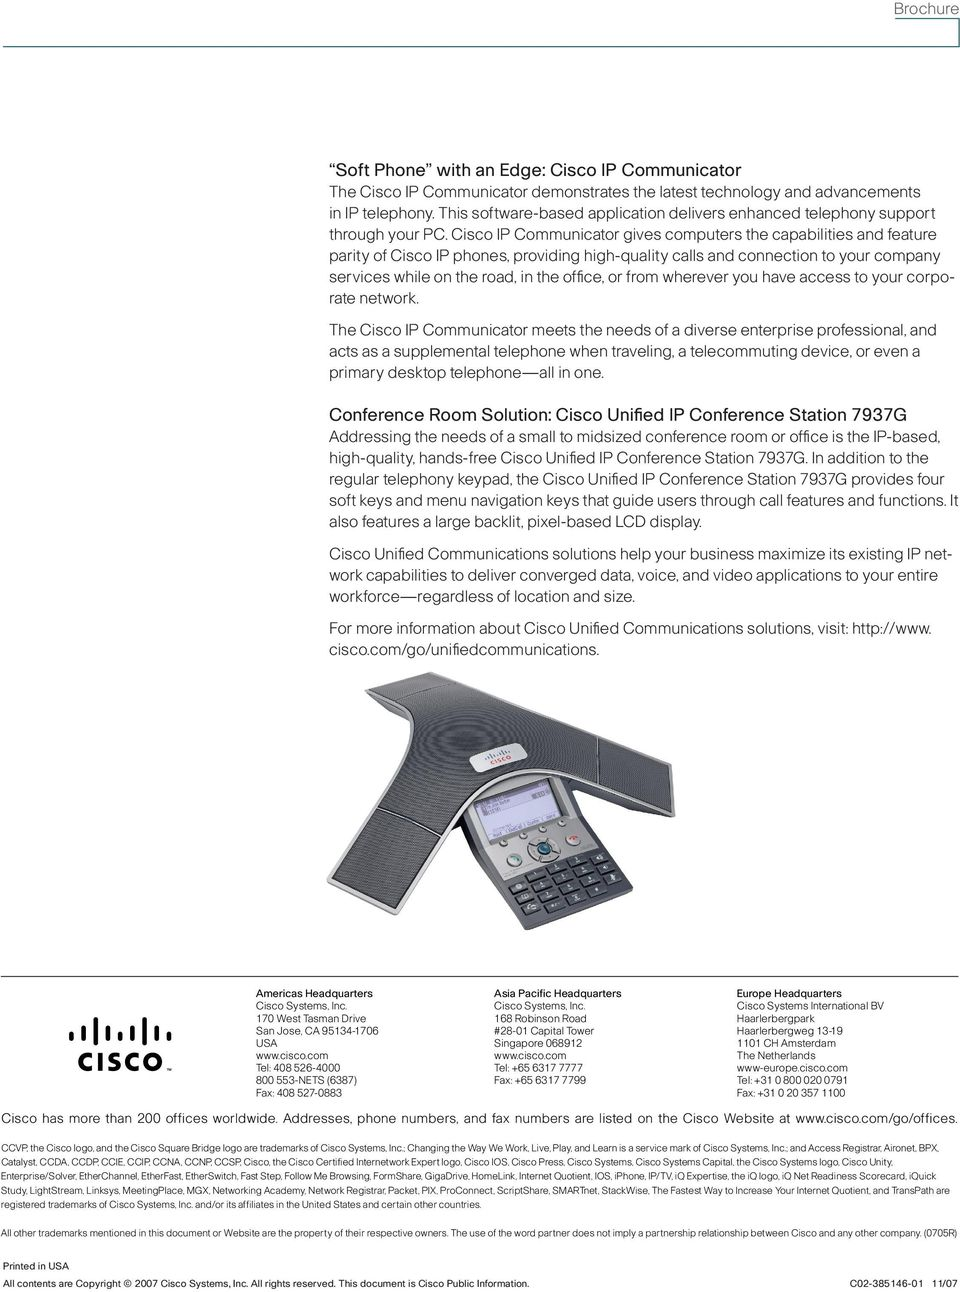 Cisco IP Communicator gives computers the capabilities and feature parity of Cisco IP phones, providing high-quality calls and connection to your company services while on the road, in the office, or